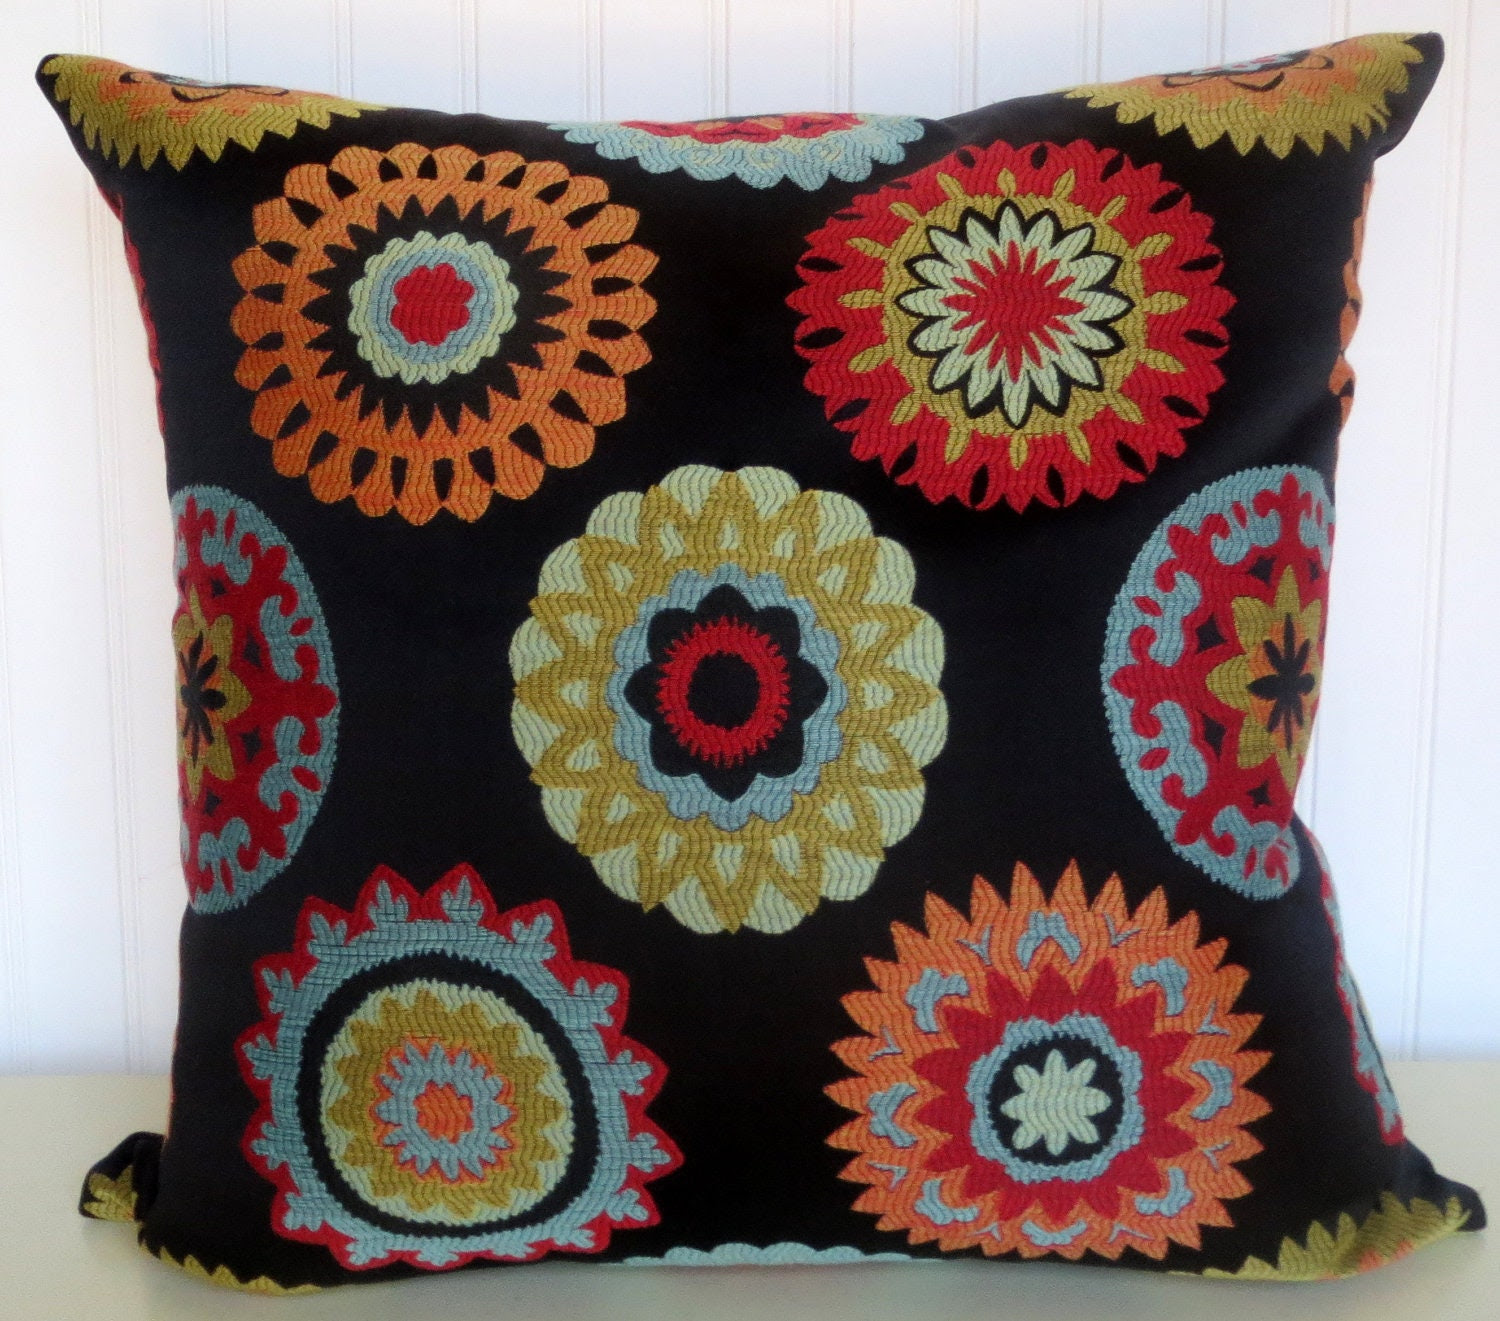 Transitional Woven Decorative Pillow Cover 20 x 20 Throw Pillow--Red, Green, Yellow, Blue, Orange, Black